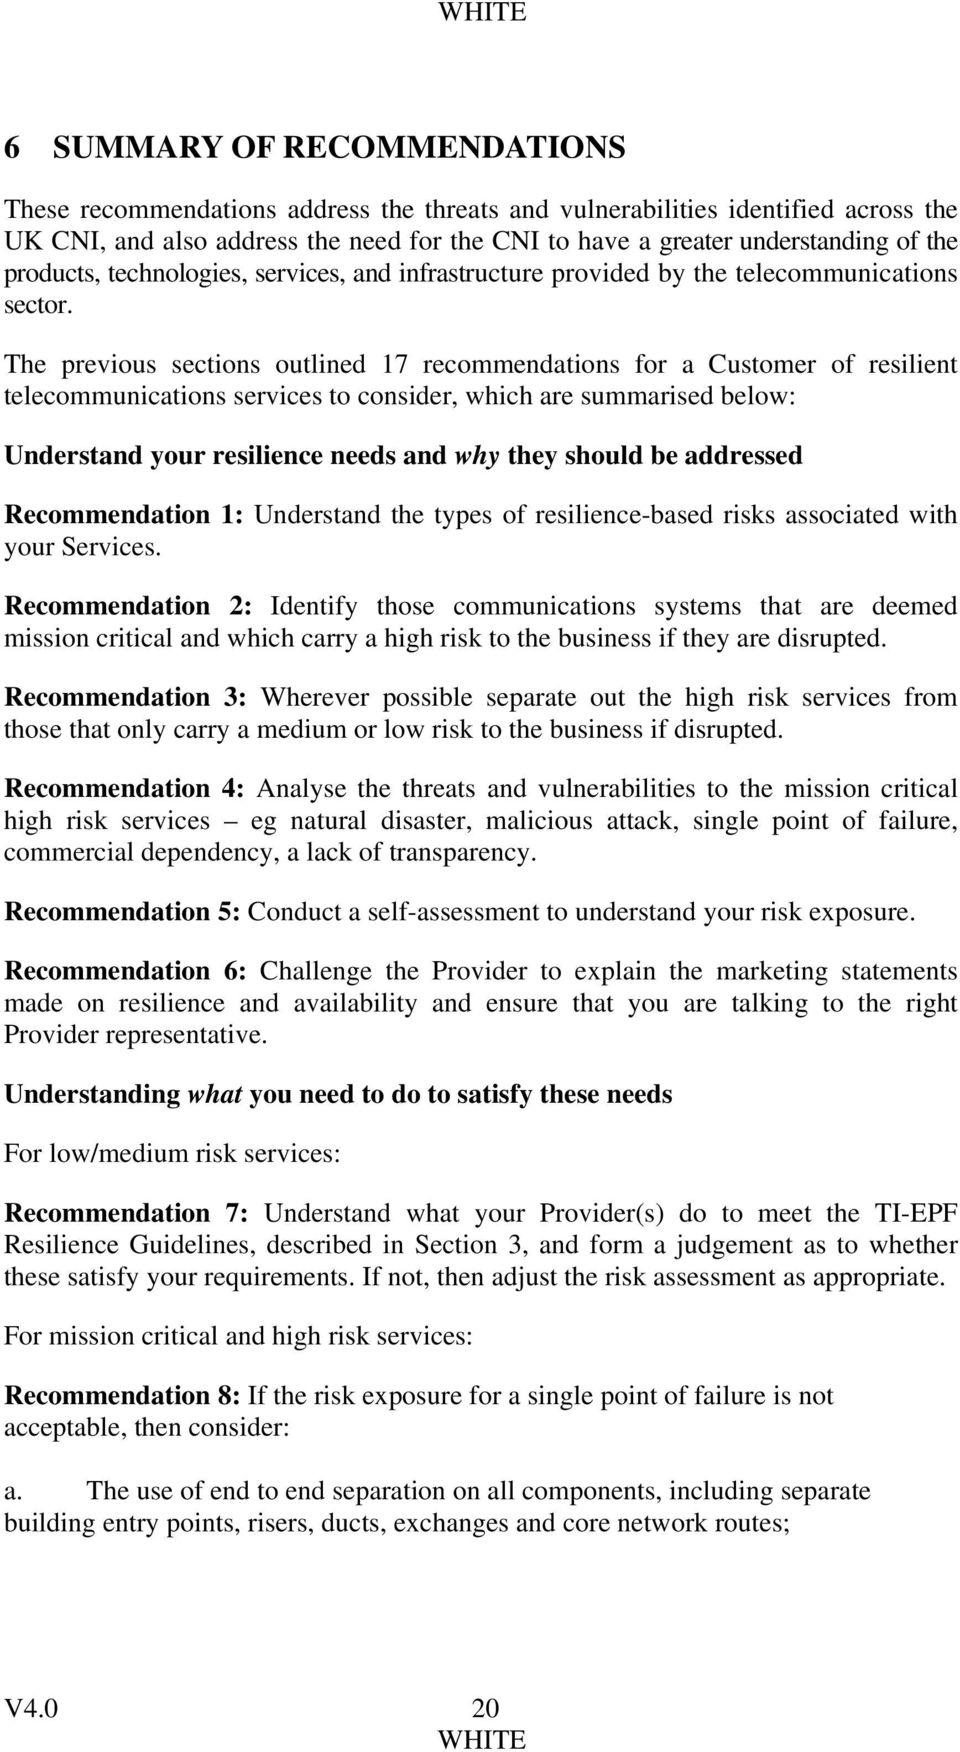 The previous sections outlined 17 recommendations for a Customer of resilient telecommunications services to consider, which are summarised below: Understand your resilience needs and why they should